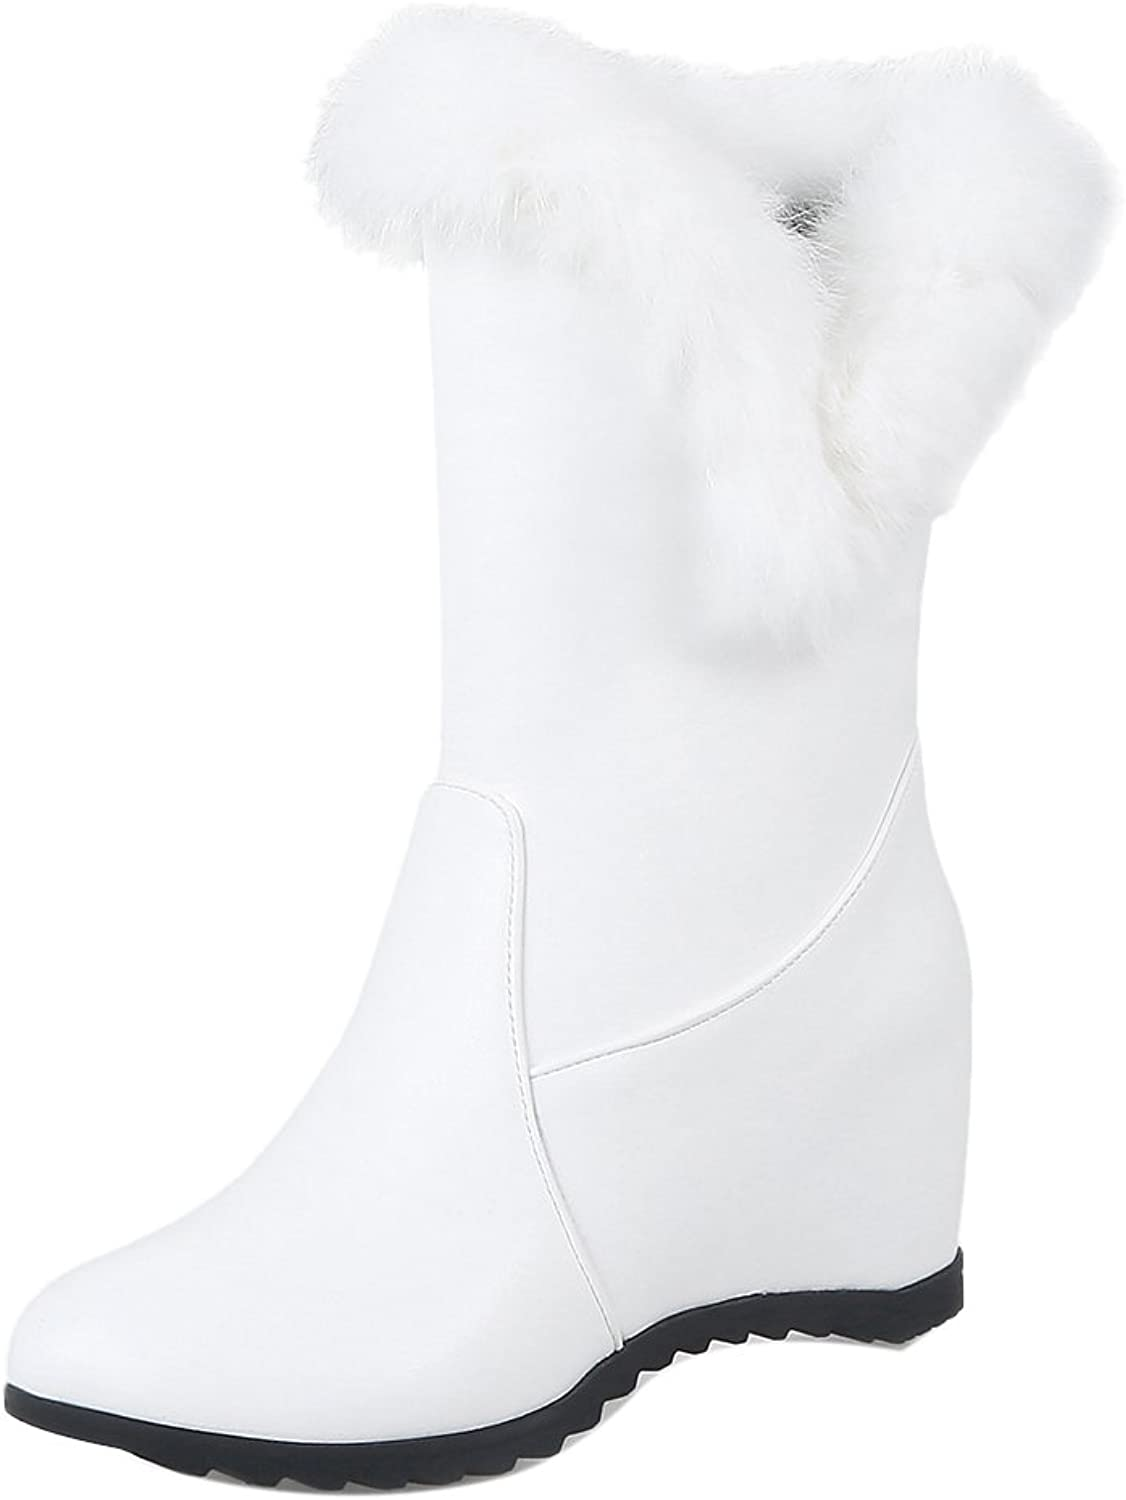 TAOFFEN Women's Pull On Boots